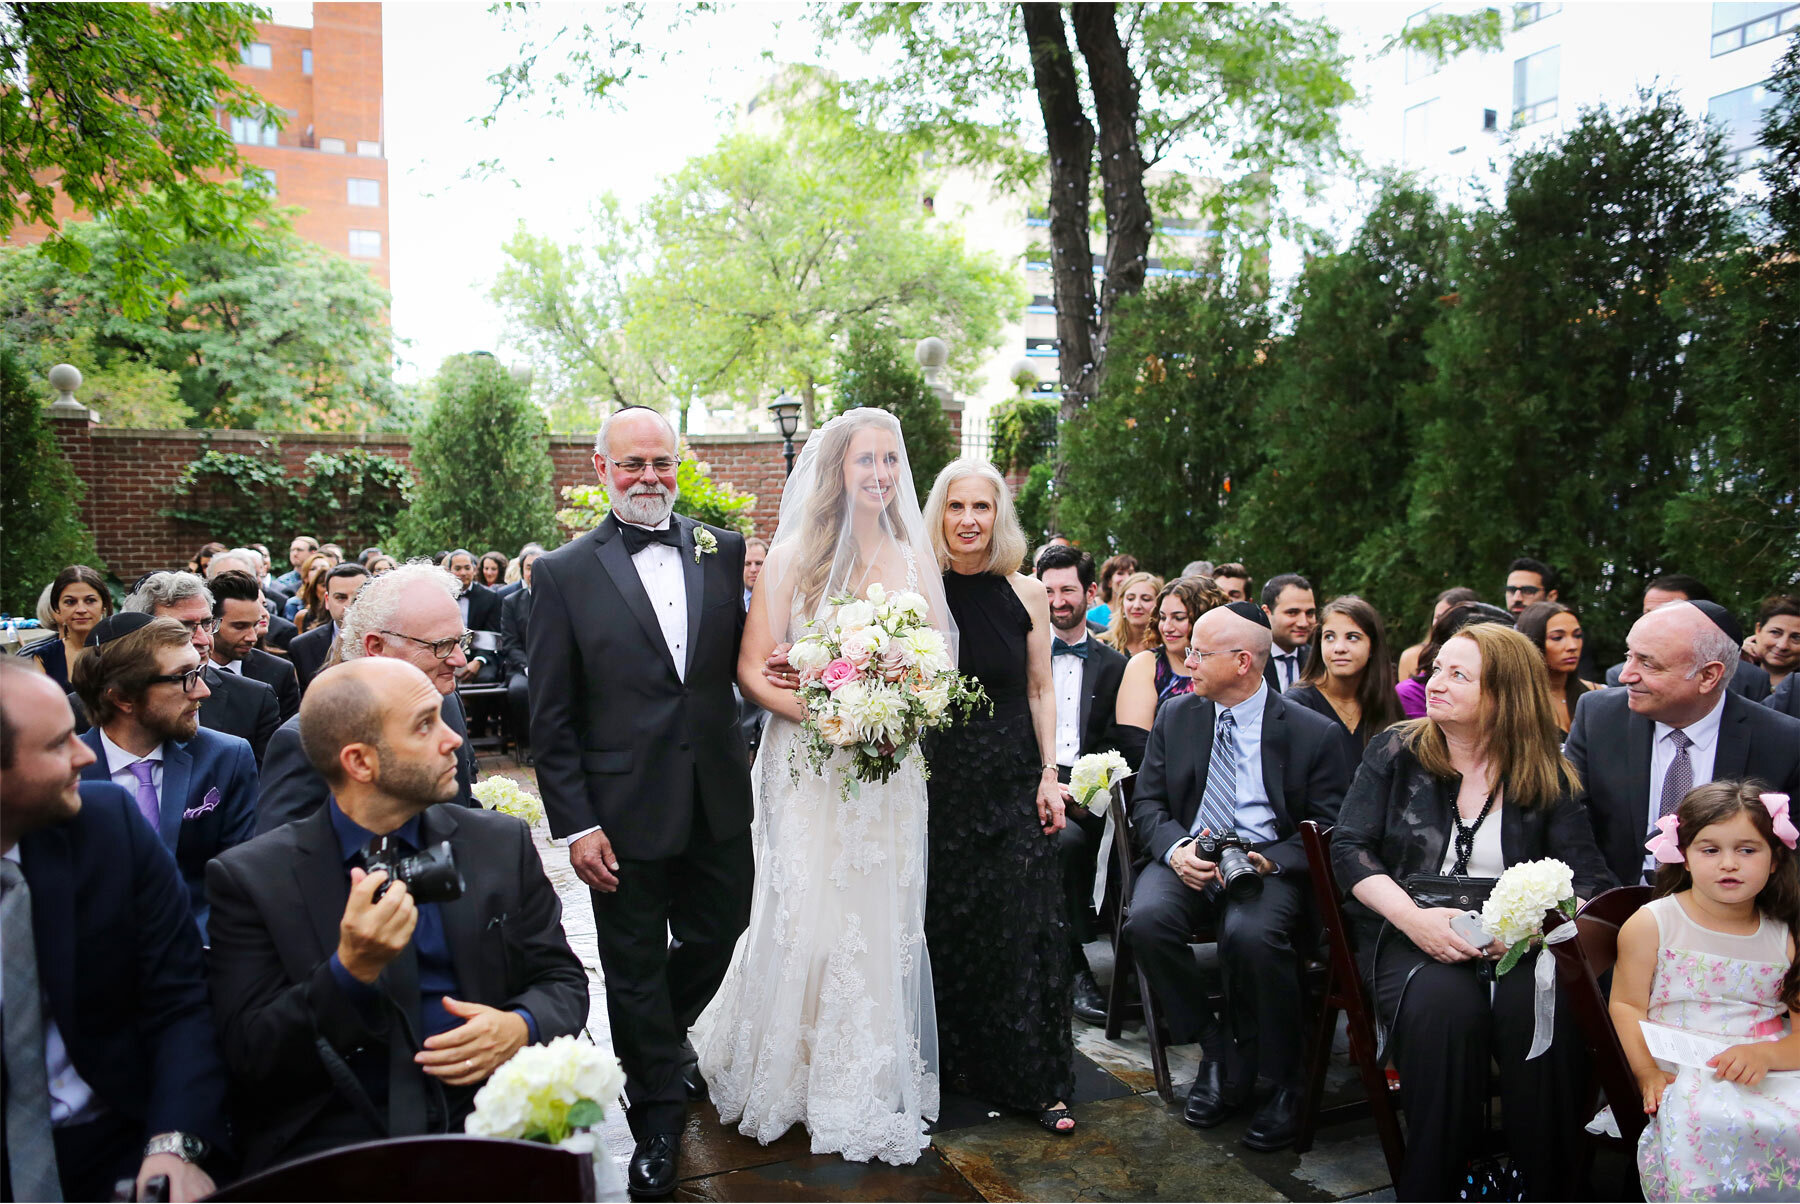 12-Minnesota-Wedding-Vick-Photography-Minneapolis-Event-Centers-Bride-Parents-Outdoor-Courtyard-Ceremony-Amy-and-Avi.jpg